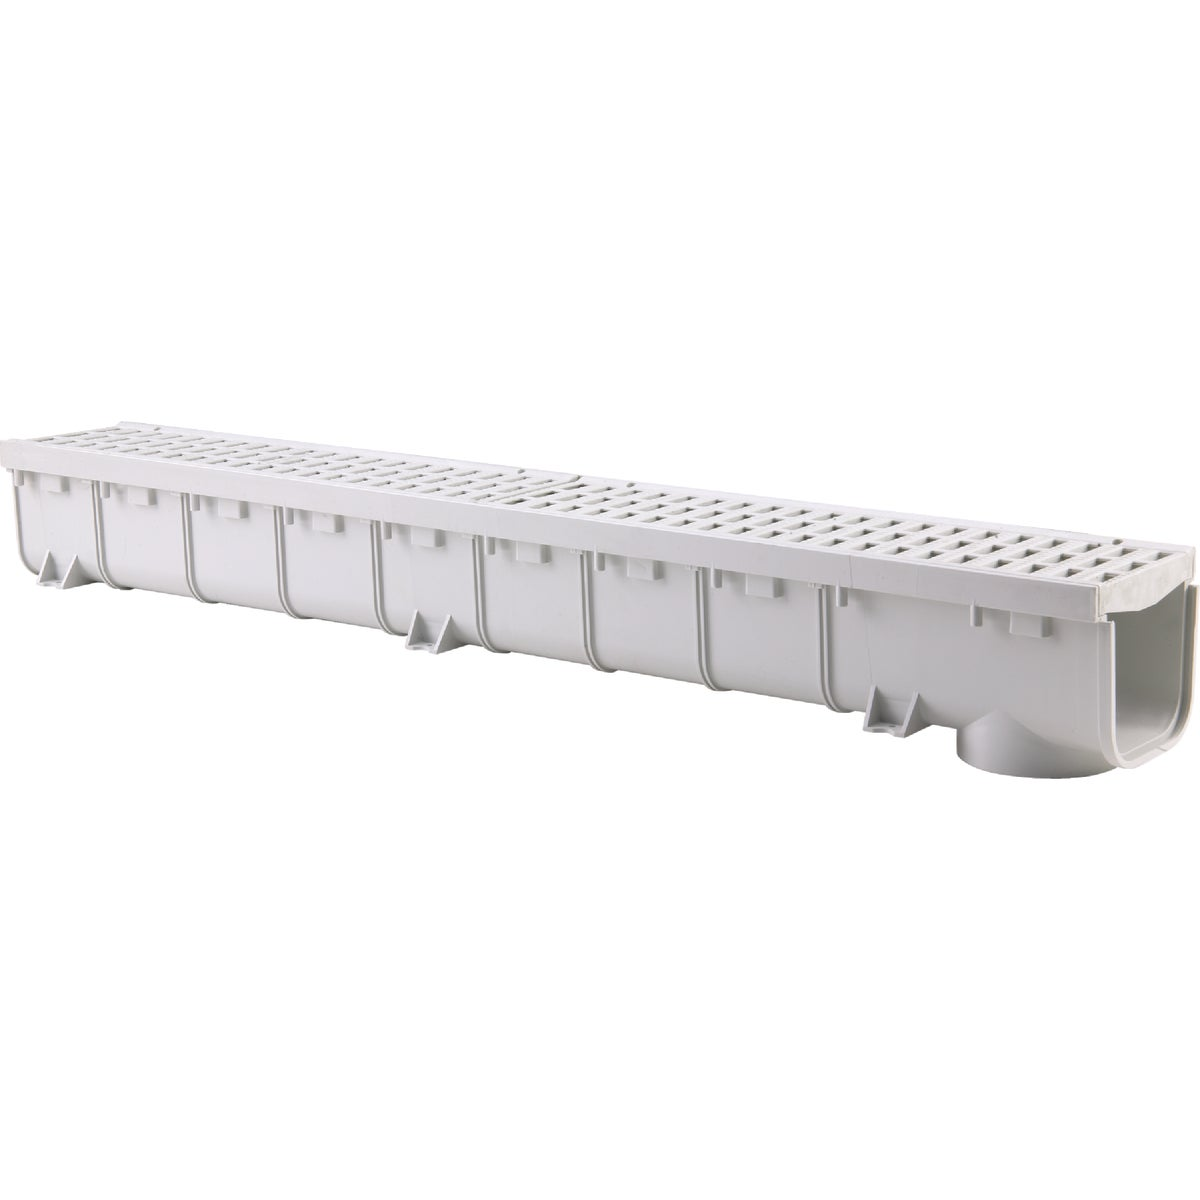 "5""X39-3/4"" DRAIN CHANNEL - 864G by National Diversified"